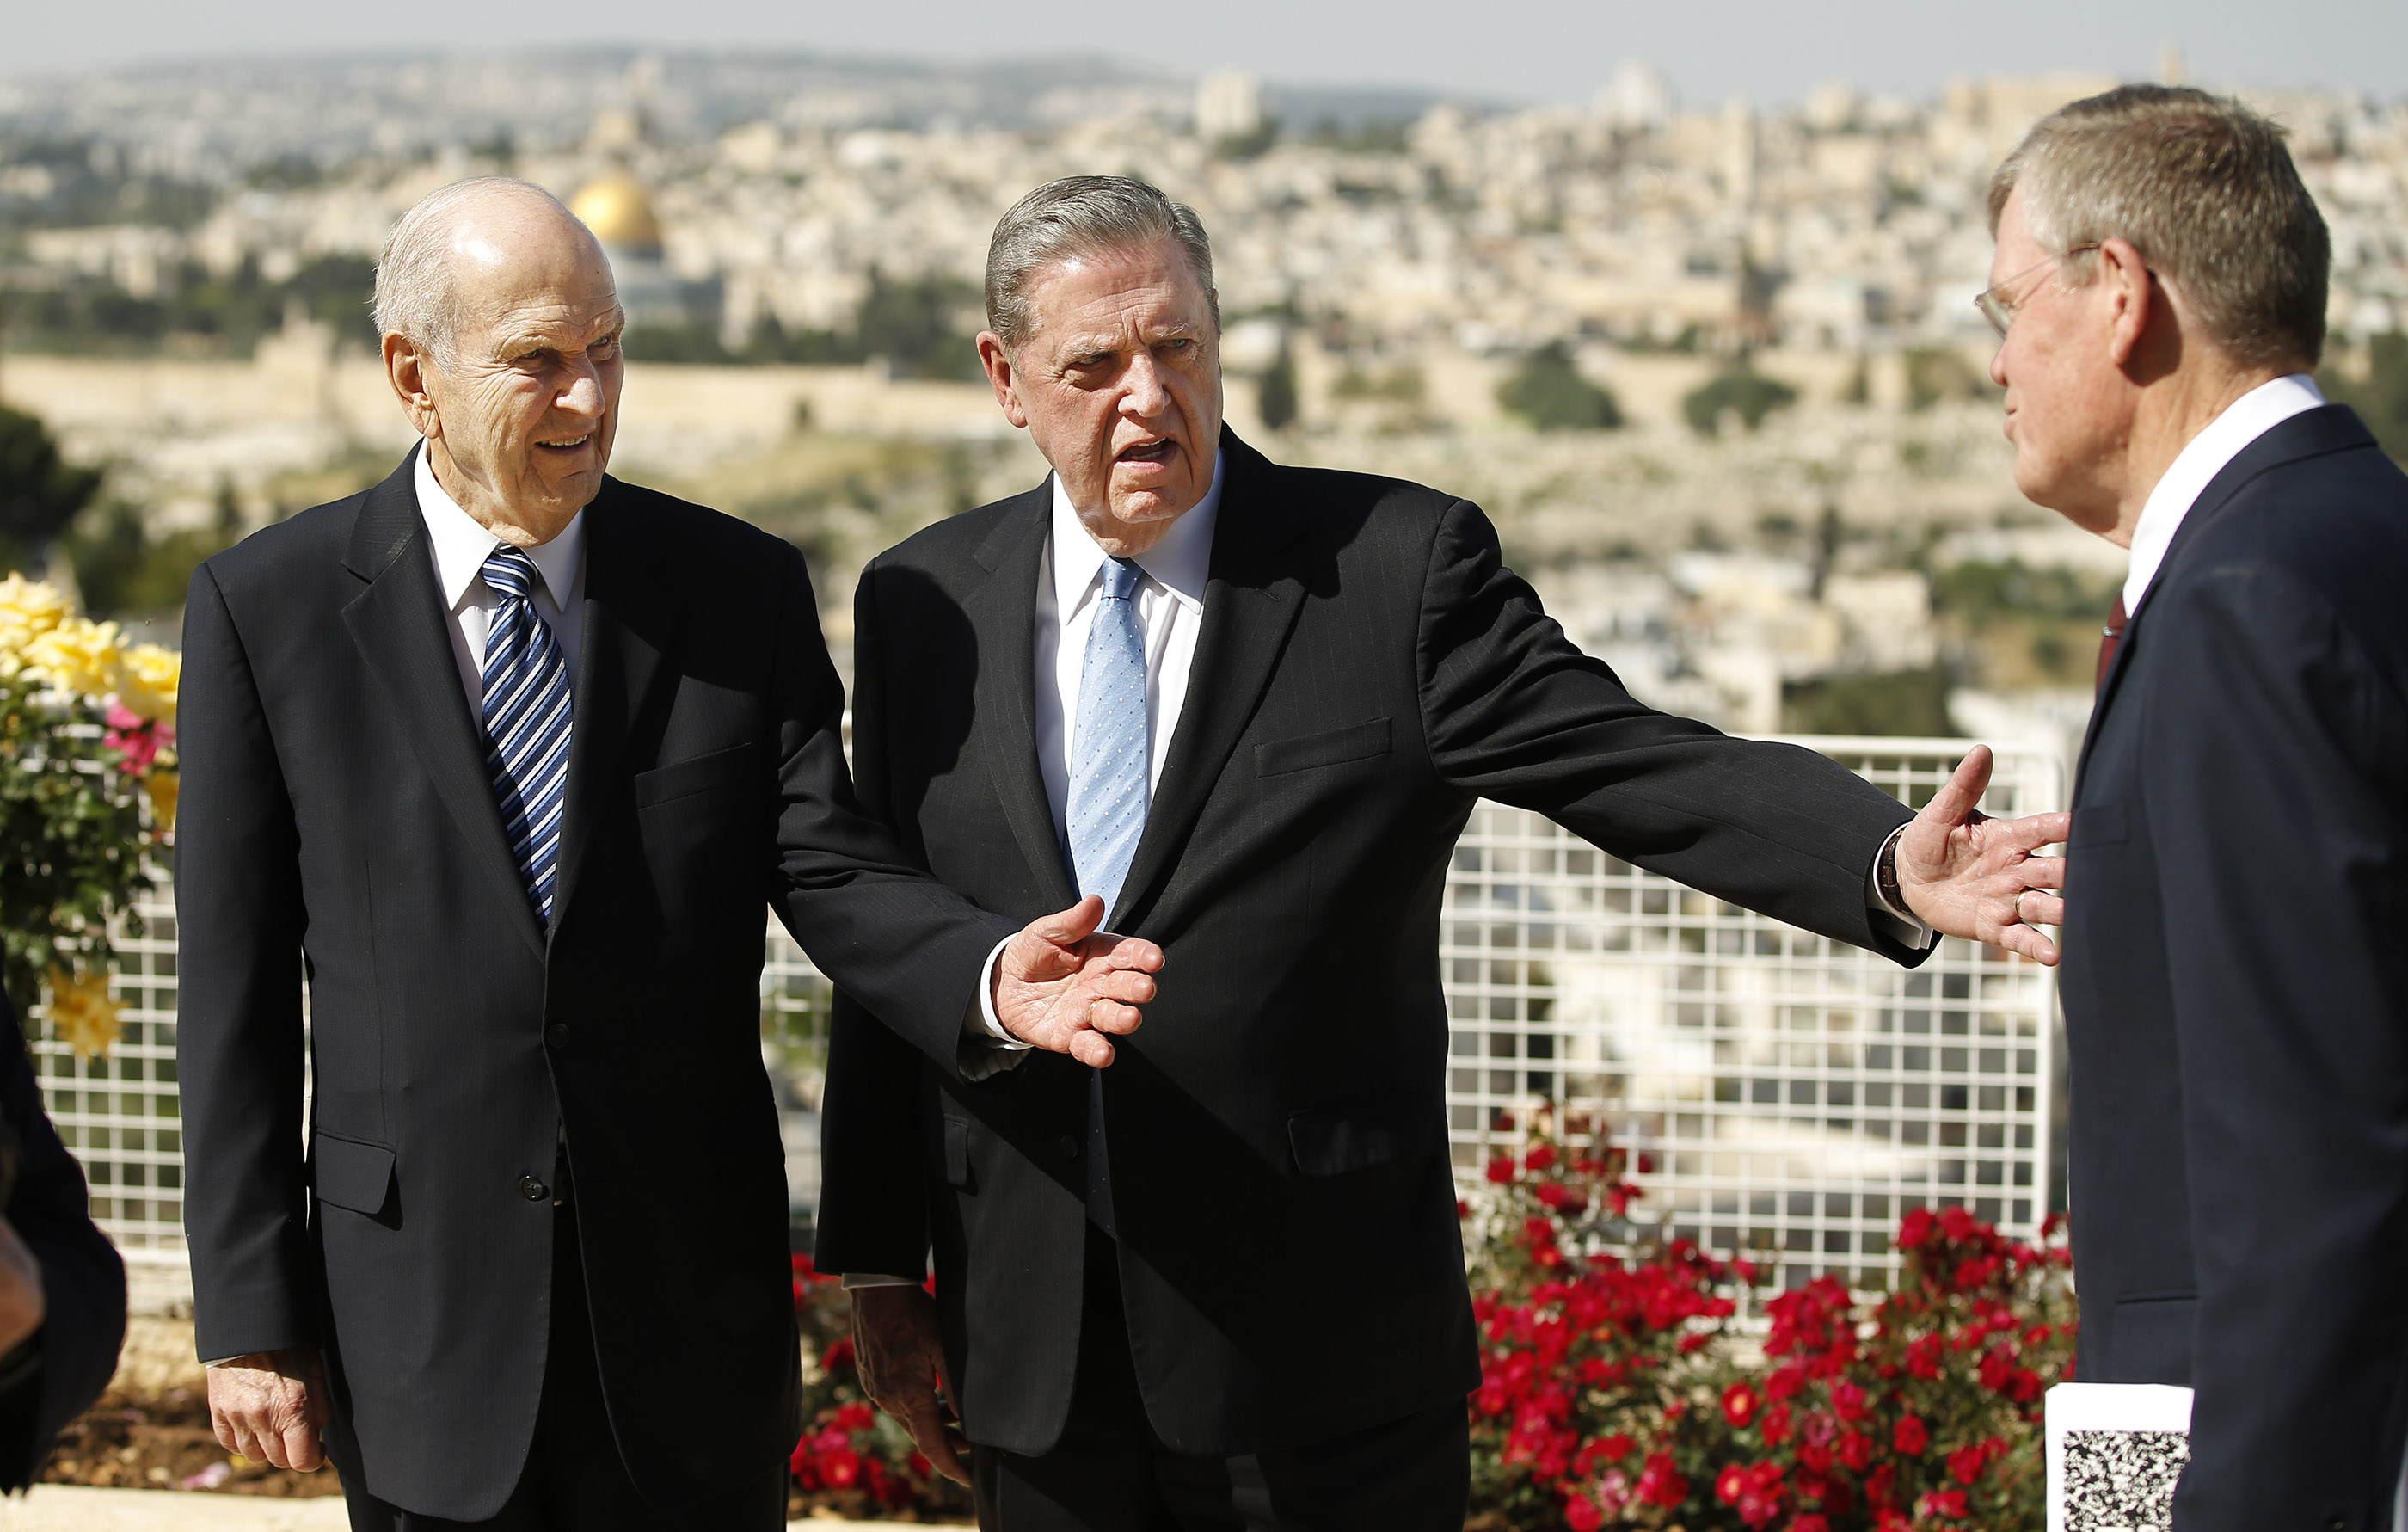 President Russell M. Nelson, president of The Church of Jesus Christ of Latter-day Saints, left, Elder Jeffrey R. Holland, of the Quorum of the Twelve Apostles, greet District President Dennis Brimhall at the BYU Jerusalem Center in Jerusalem on Saturday, April 14, 2018.